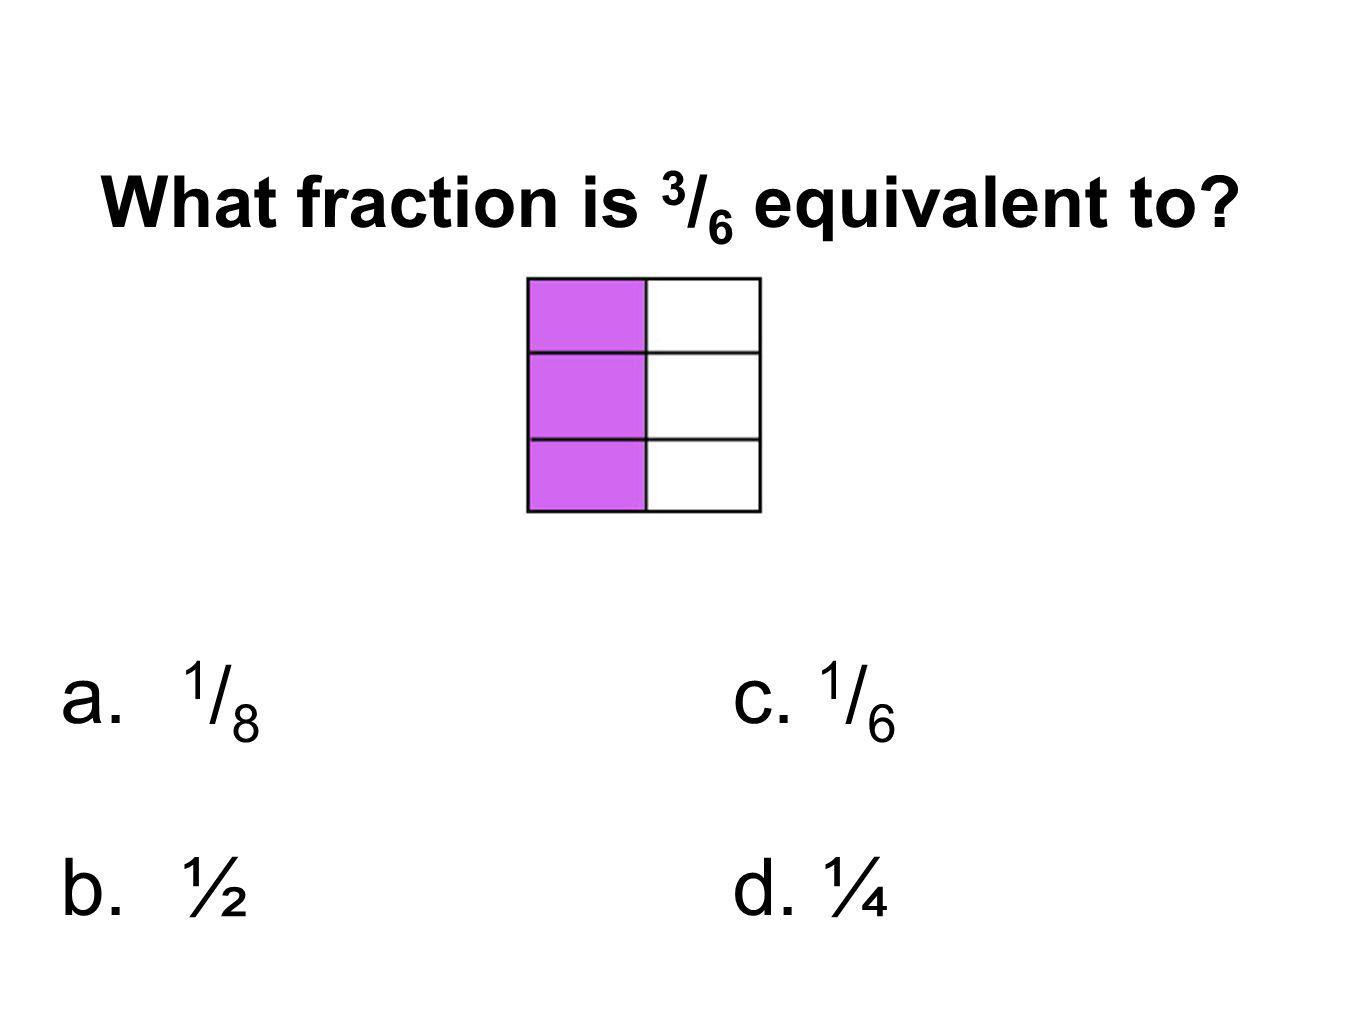 What fraction is 3/6 equivalent to